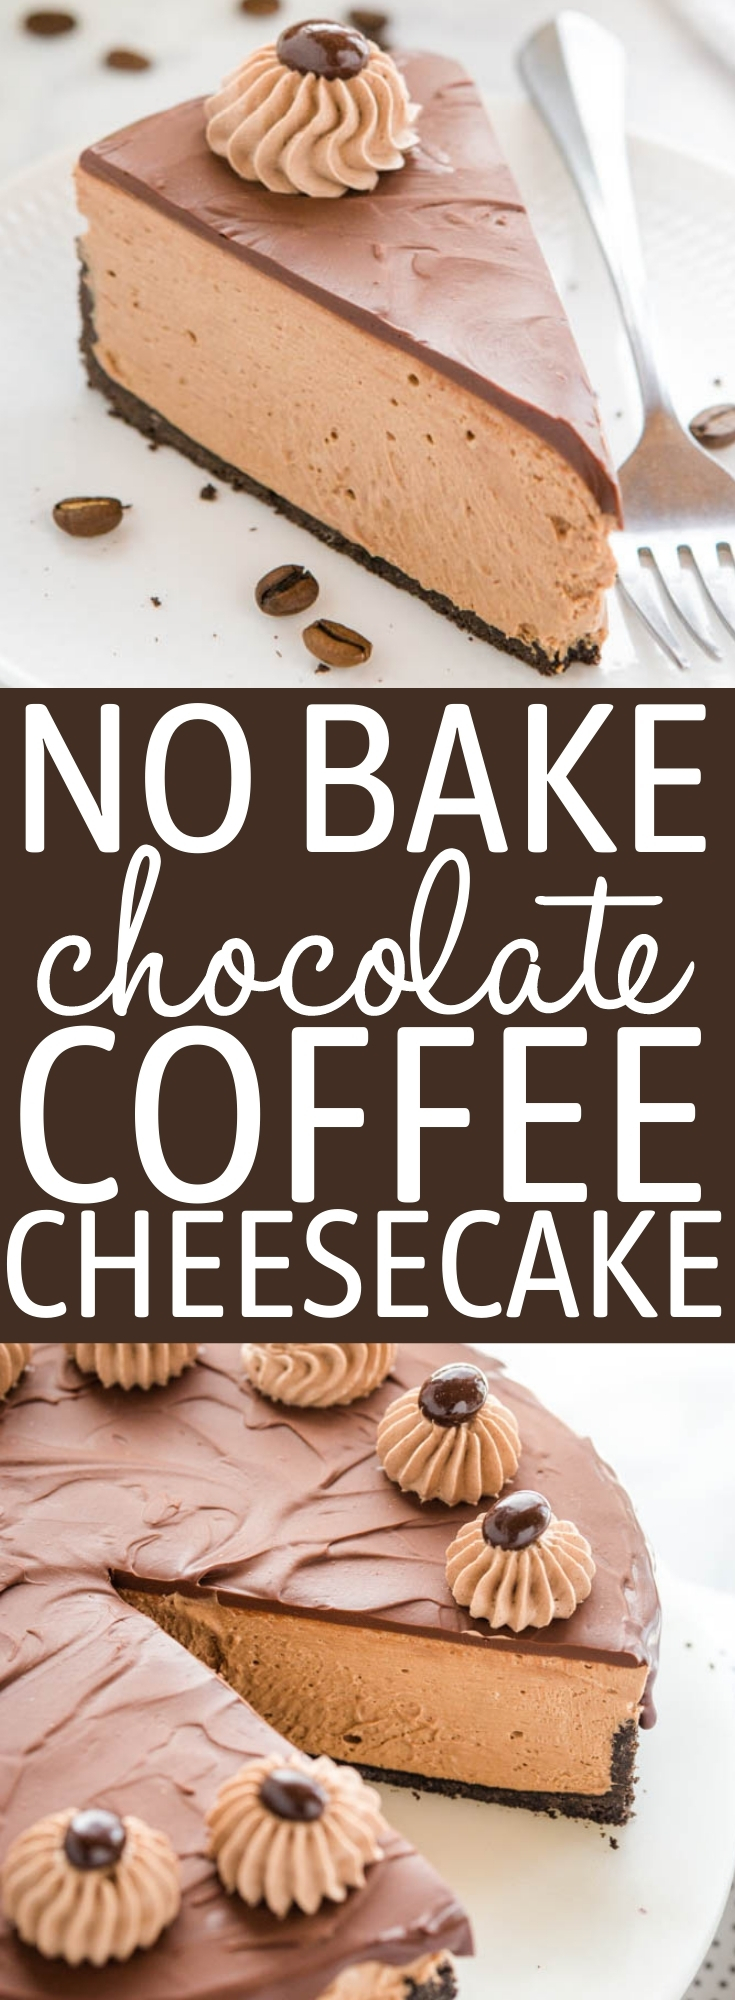 This No Bake Chocolate Coffee Cheesecake is ultra creamy and smooth, packed with espresso and chocolate and topped with a decadent chocolate ganache! No baking required! Recipe from thebusybaker.ca! #chocolate #coffee #cheesecake #coffeecheesecake #nobake #dessert #mocha #summer #cake via @busybakerblog